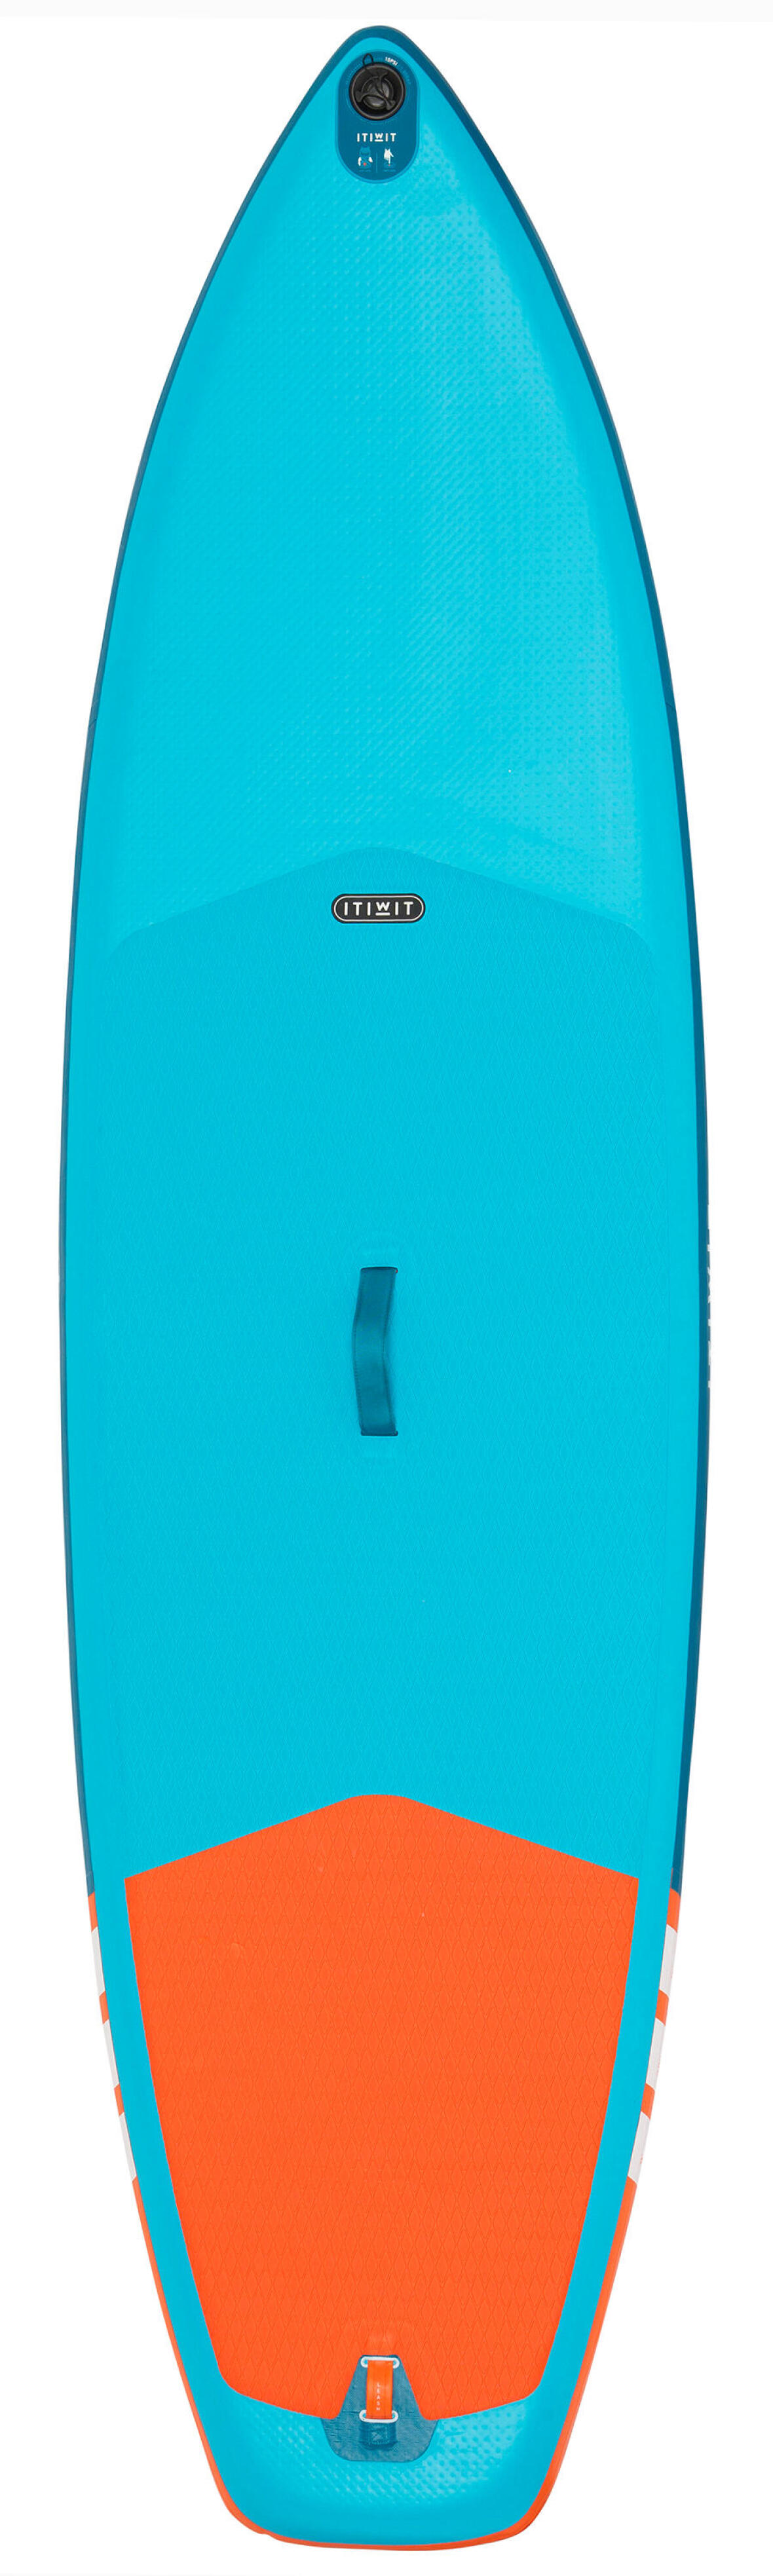 decathlon-itiwit-inflatable-sup-x100-9-blue